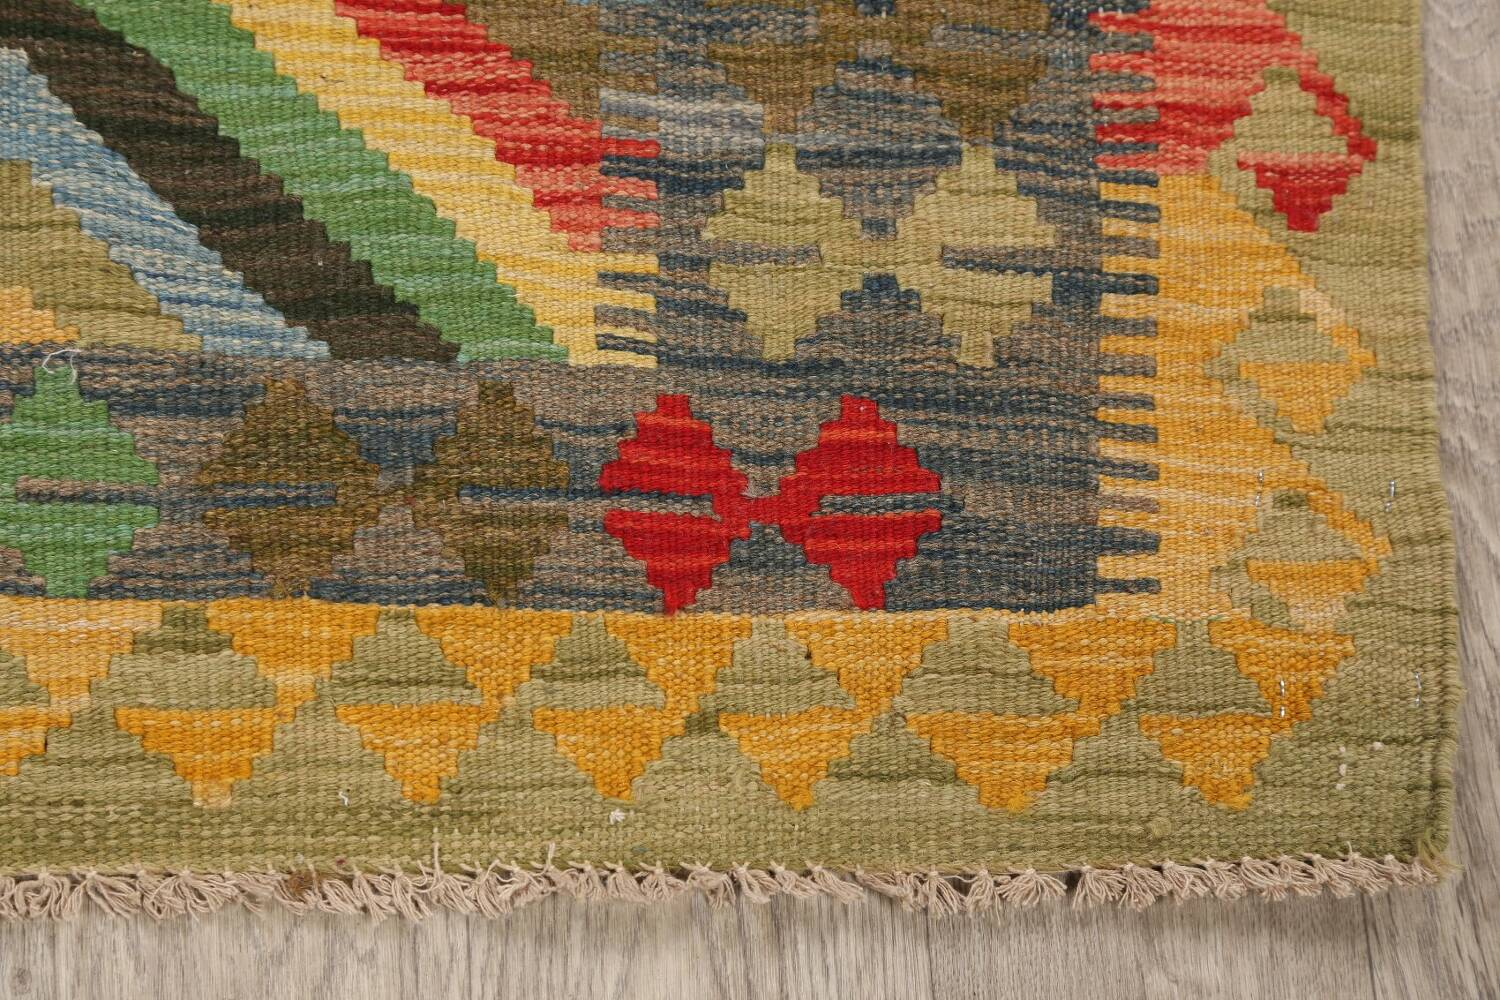 South-Western Reversible Kilim Oriental Area Rug 3x3 Square image 5